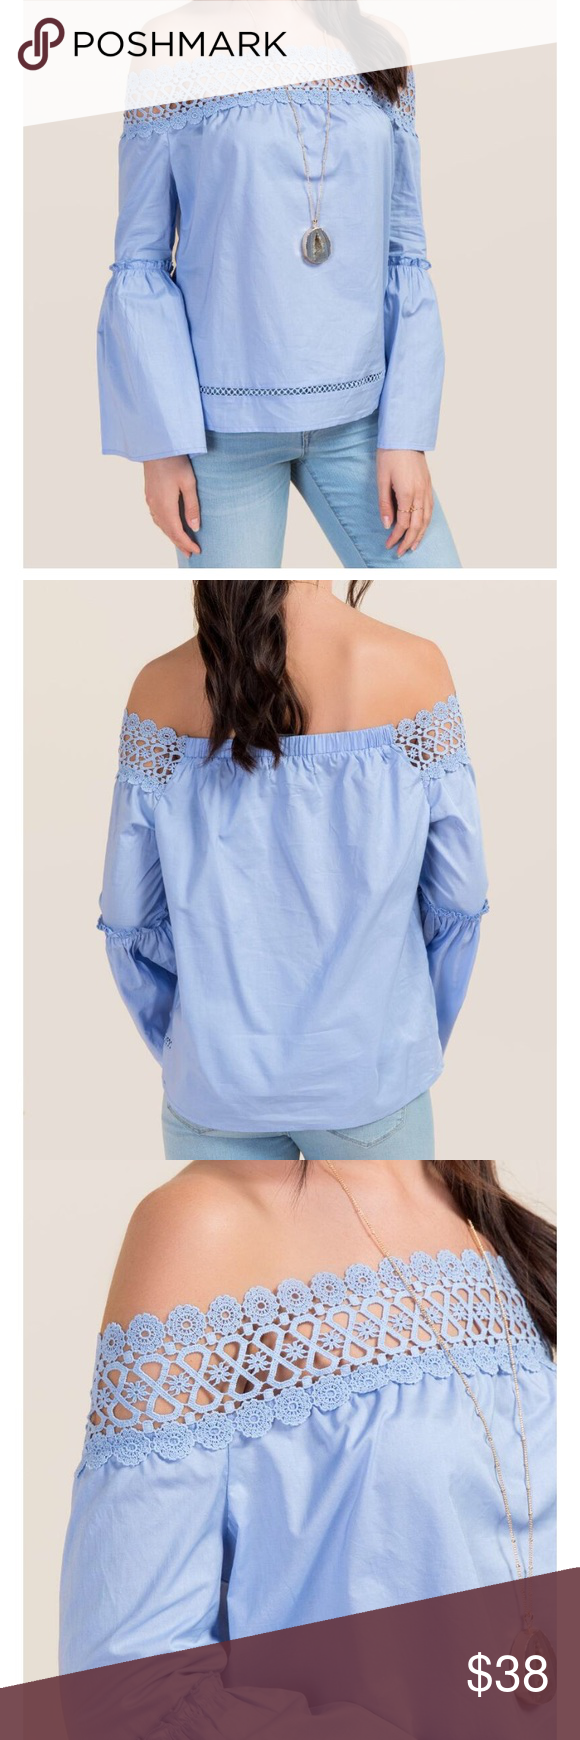 """Crochet trim off the shoulder poplin top - 20"""" length from shoulder to hem - 43"""" bust - 43"""" waist - measured from a size small                                              - 100% Cotton - Hand Wash - Imported Francesca's Collections Tops Blouses"""